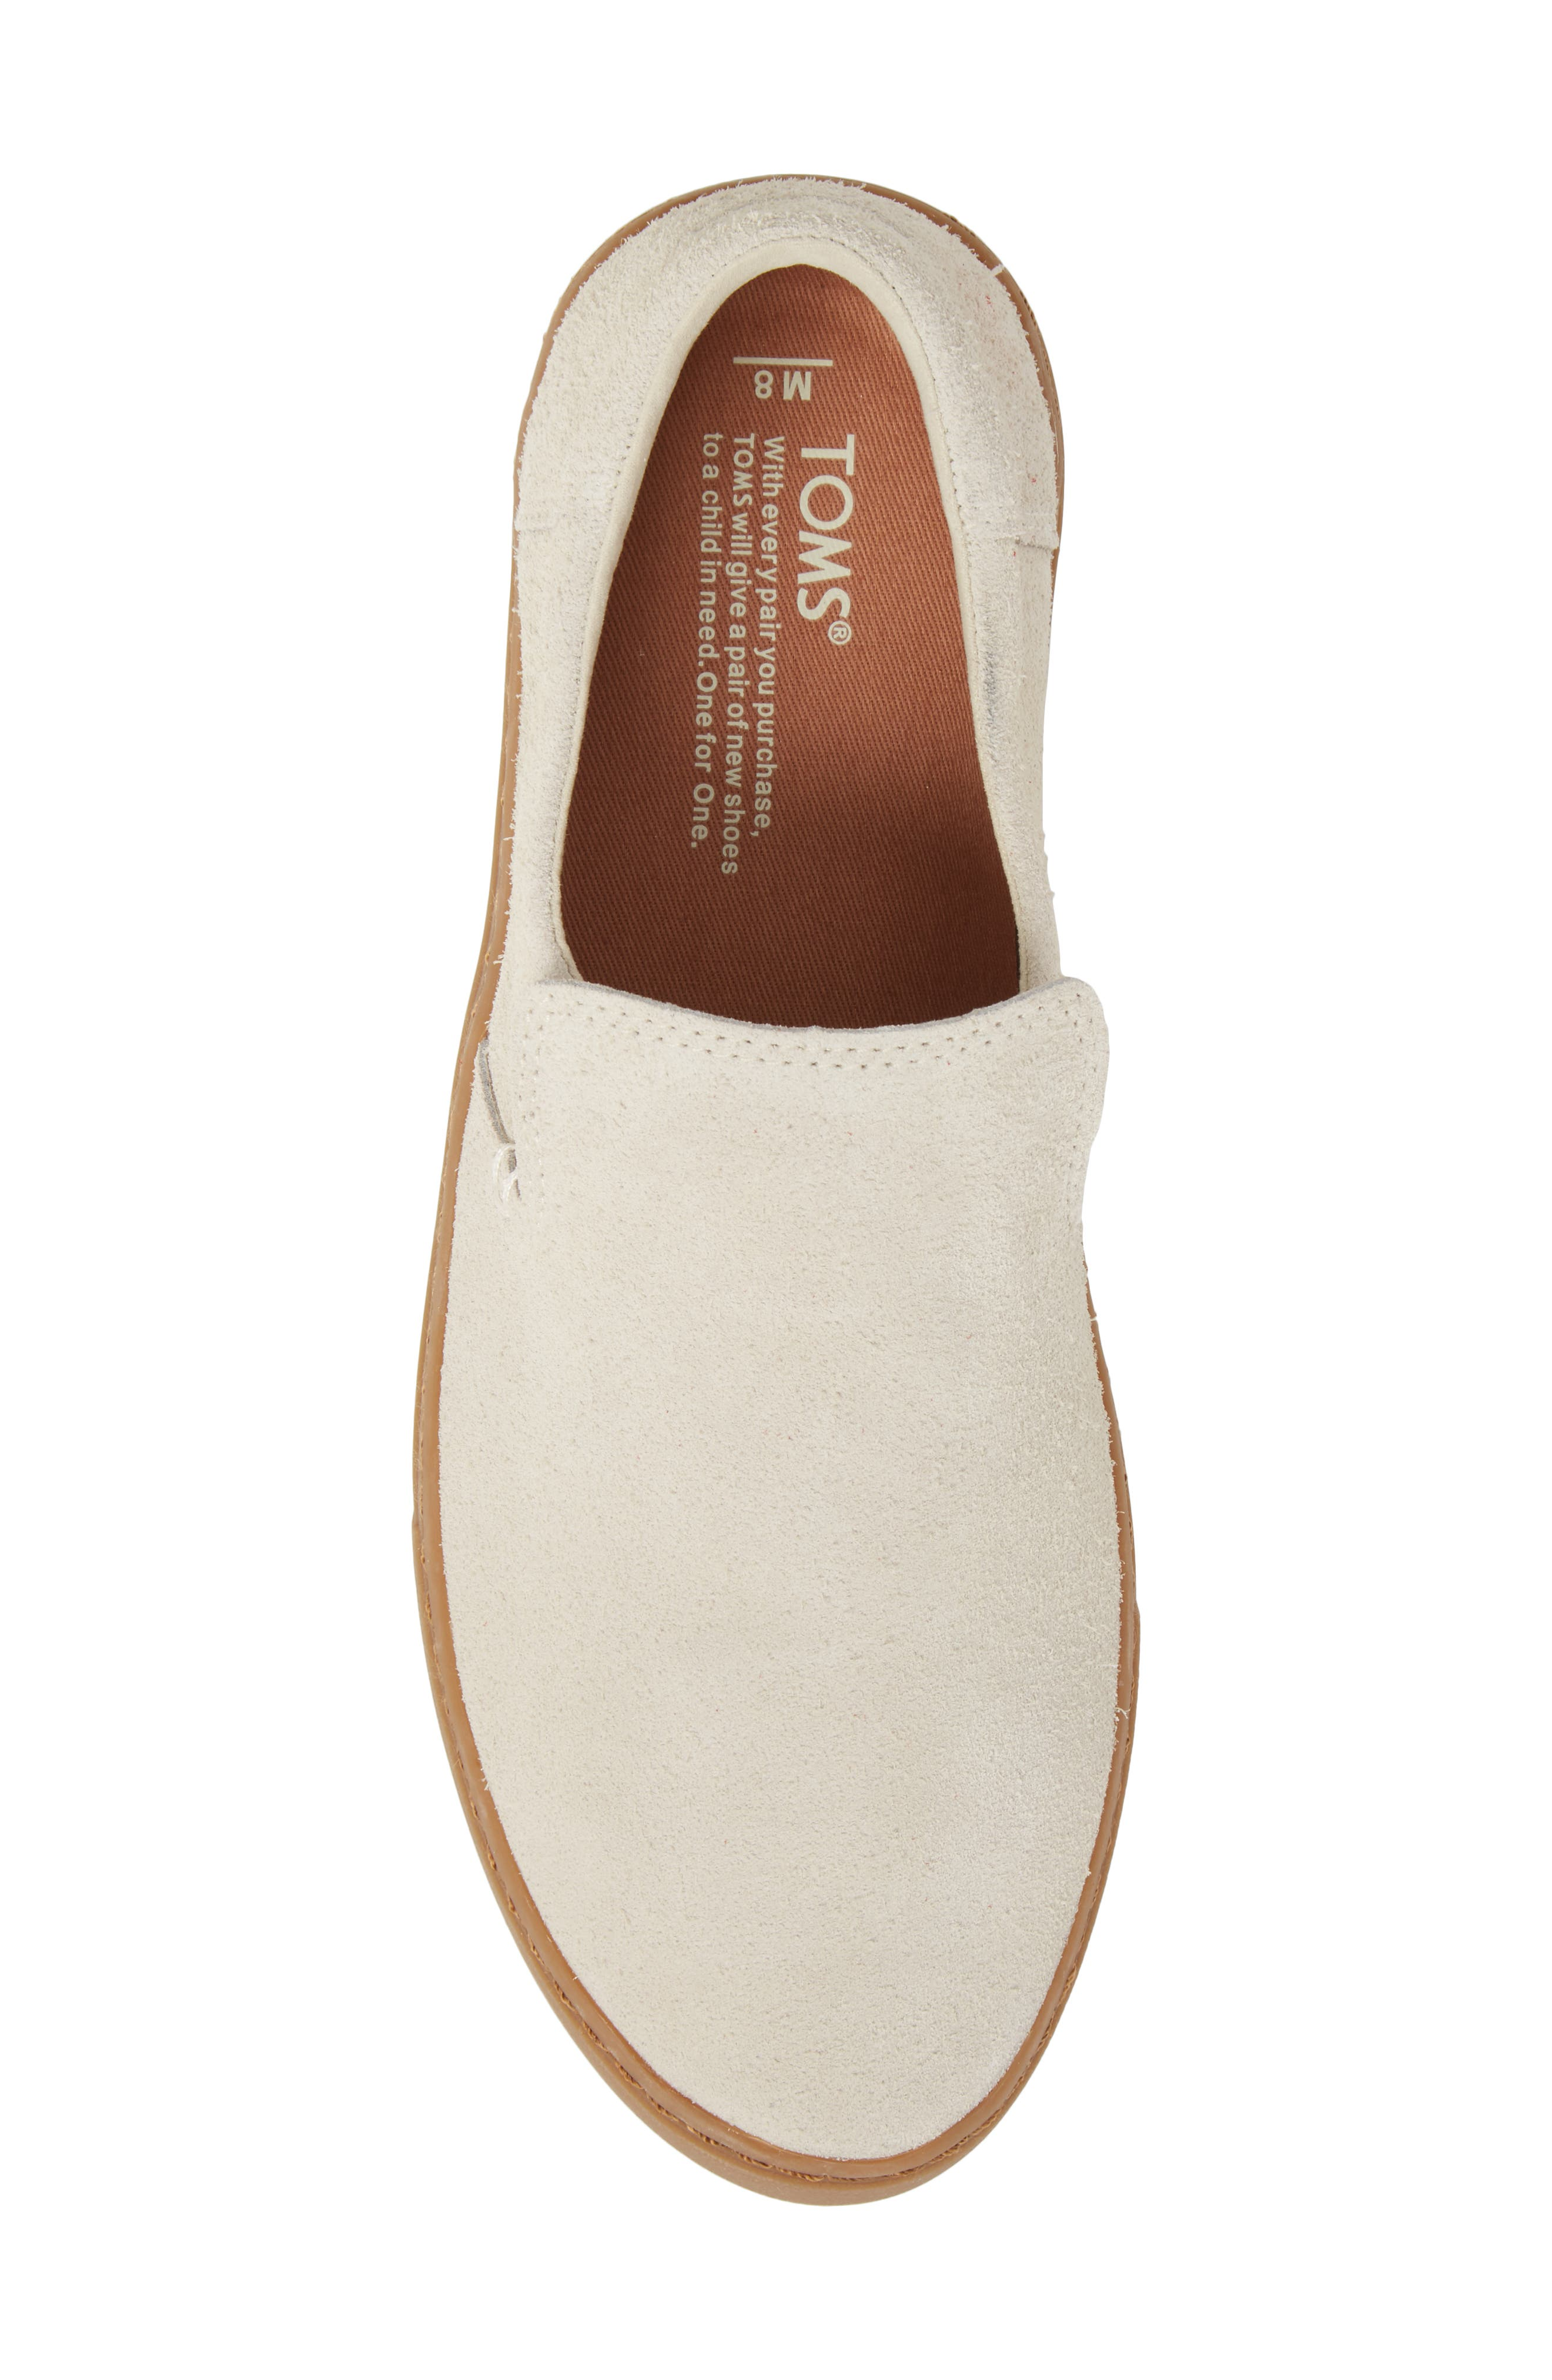 Loma Slip-On Sneaker,                             Alternate thumbnail 5, color,                             Birch Shaggy Suede/ Gum